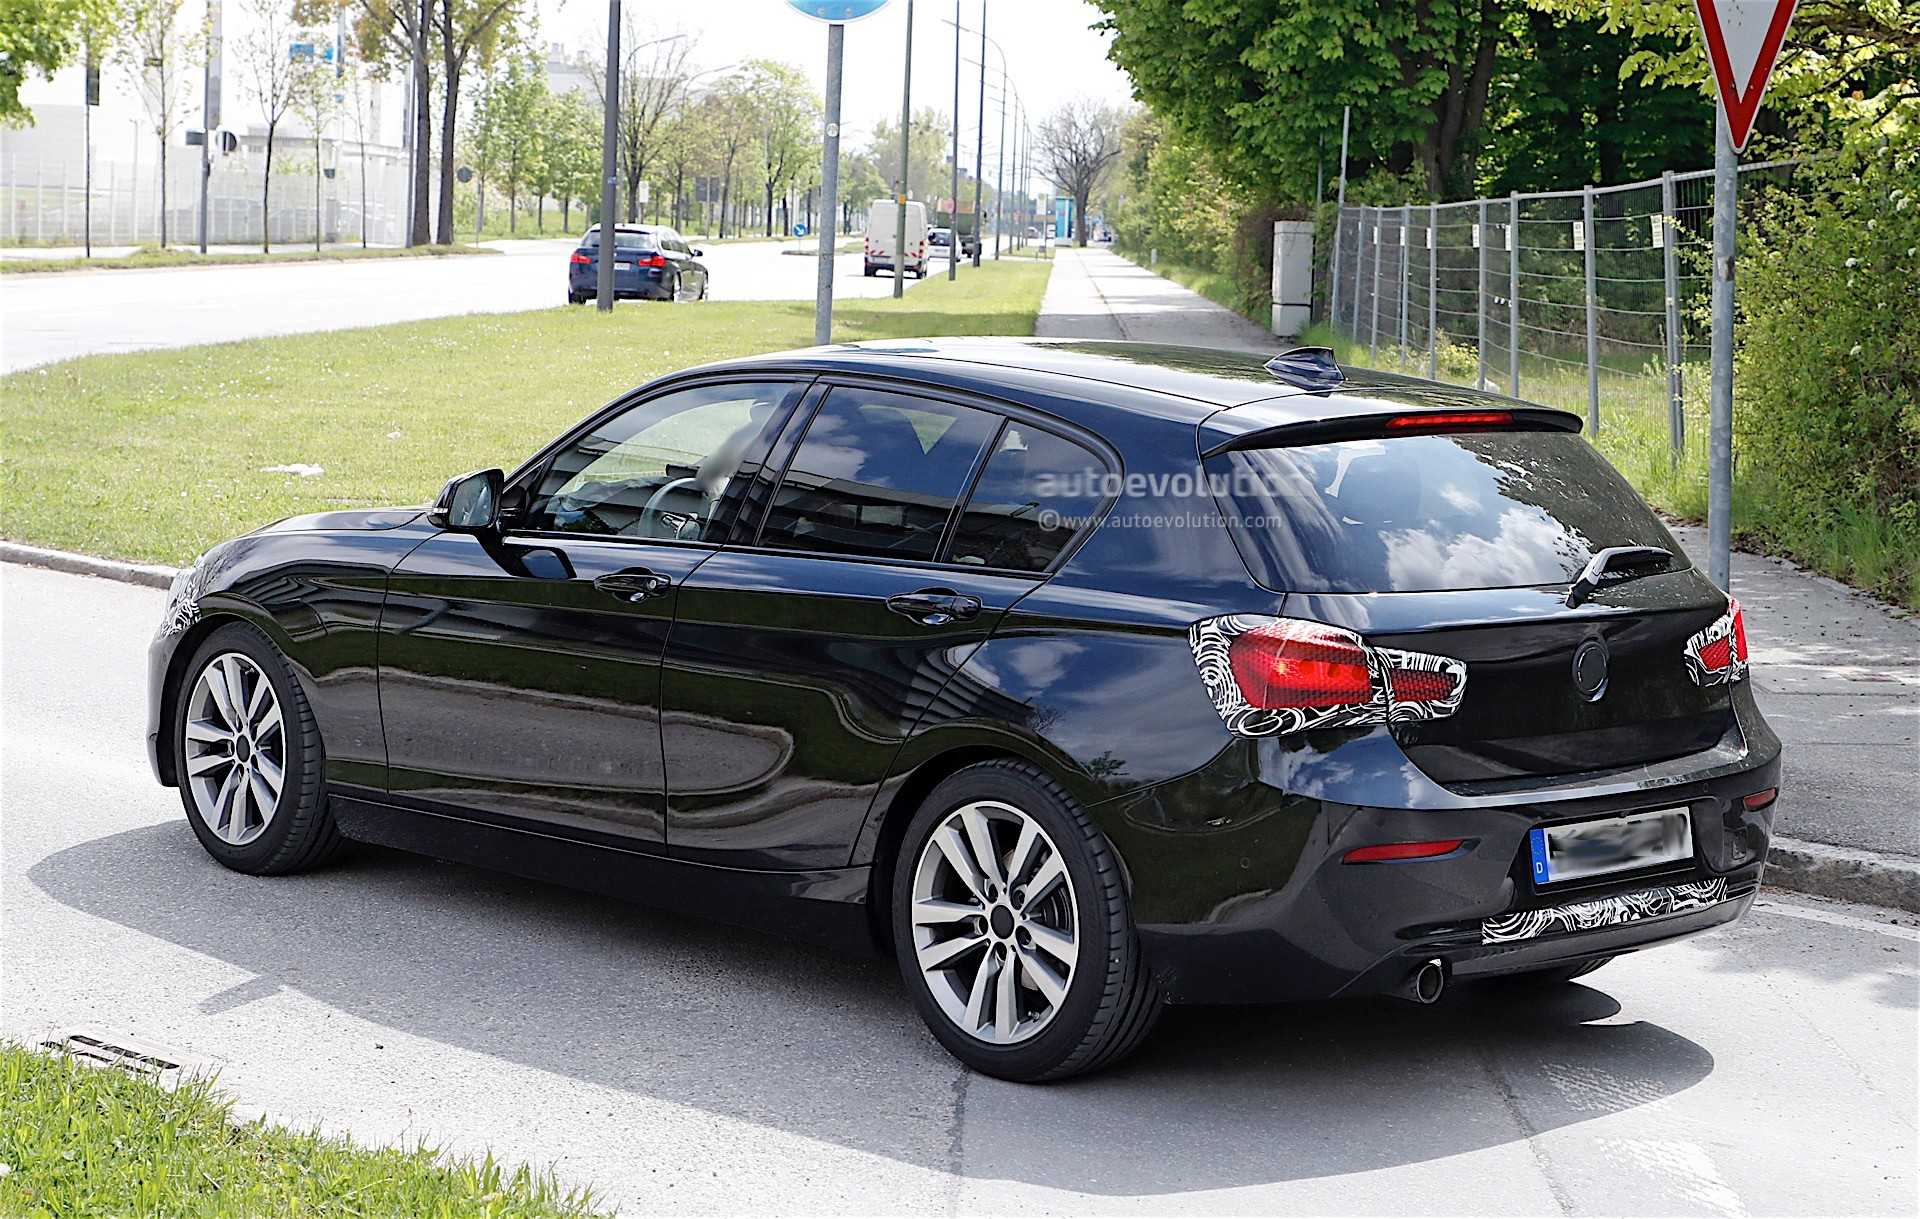 bmw 1 series may keep rear wheel drive version without. Black Bedroom Furniture Sets. Home Design Ideas